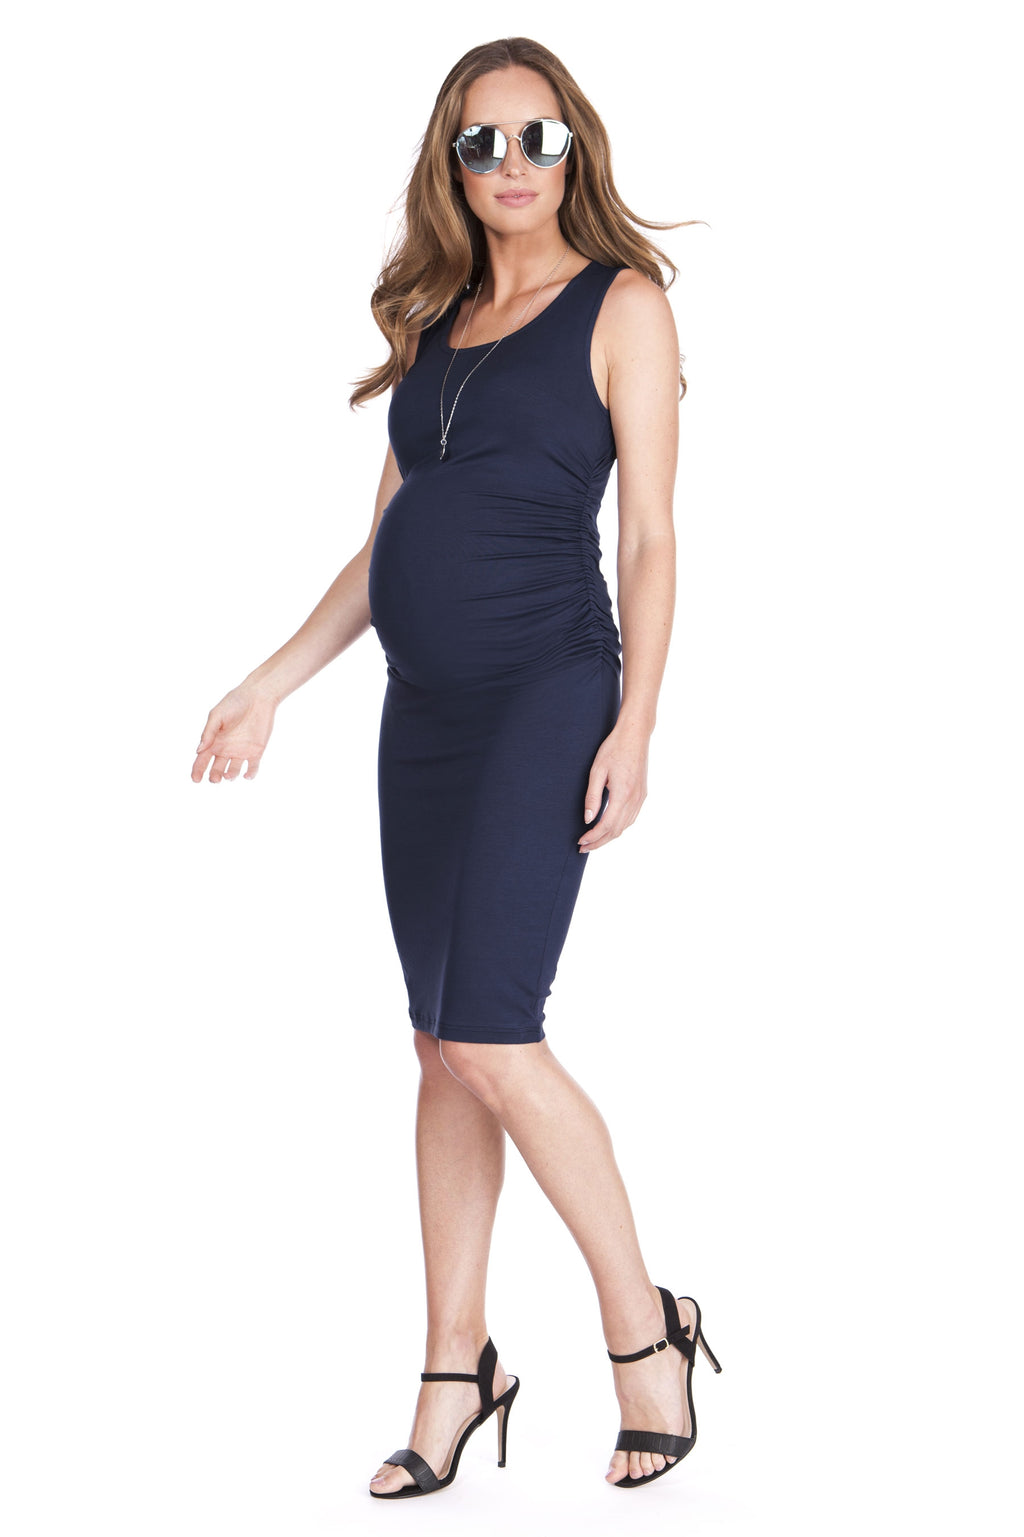 Seraphine Valentina Maternity Dress in Navy - Seven Women Maternity